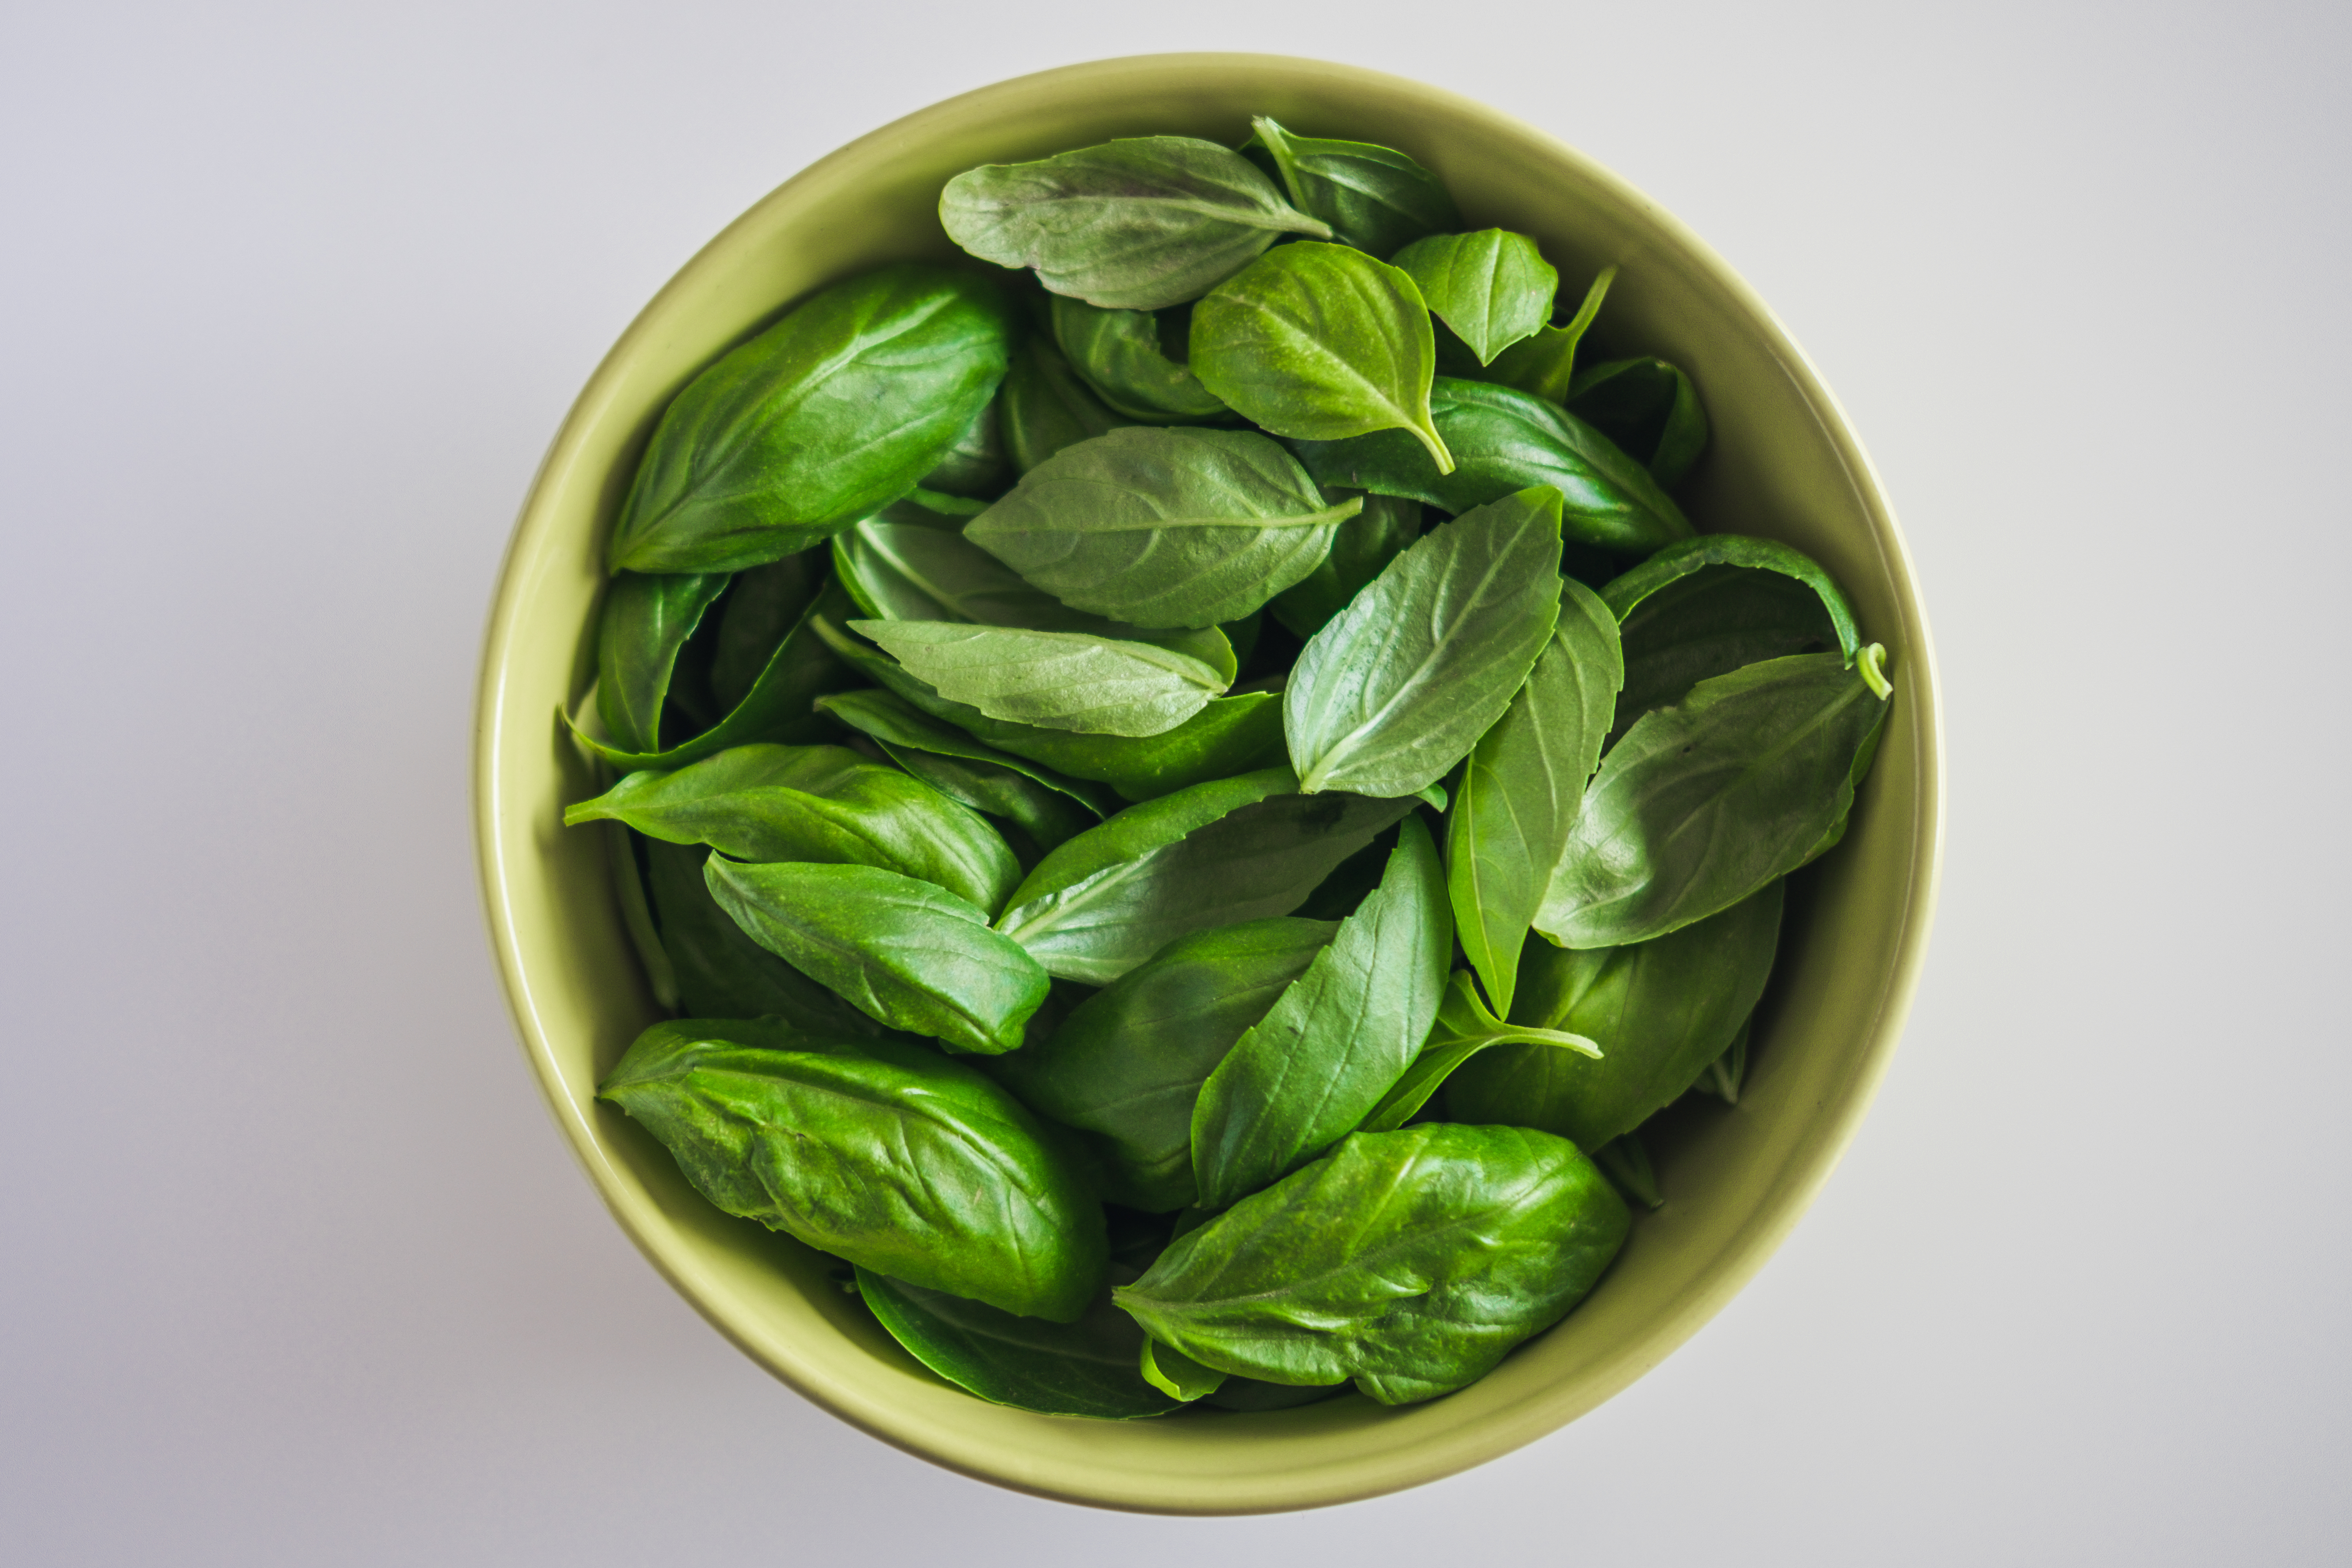 How to Repot Store-Bought Basil | Home Guides | SF Gate